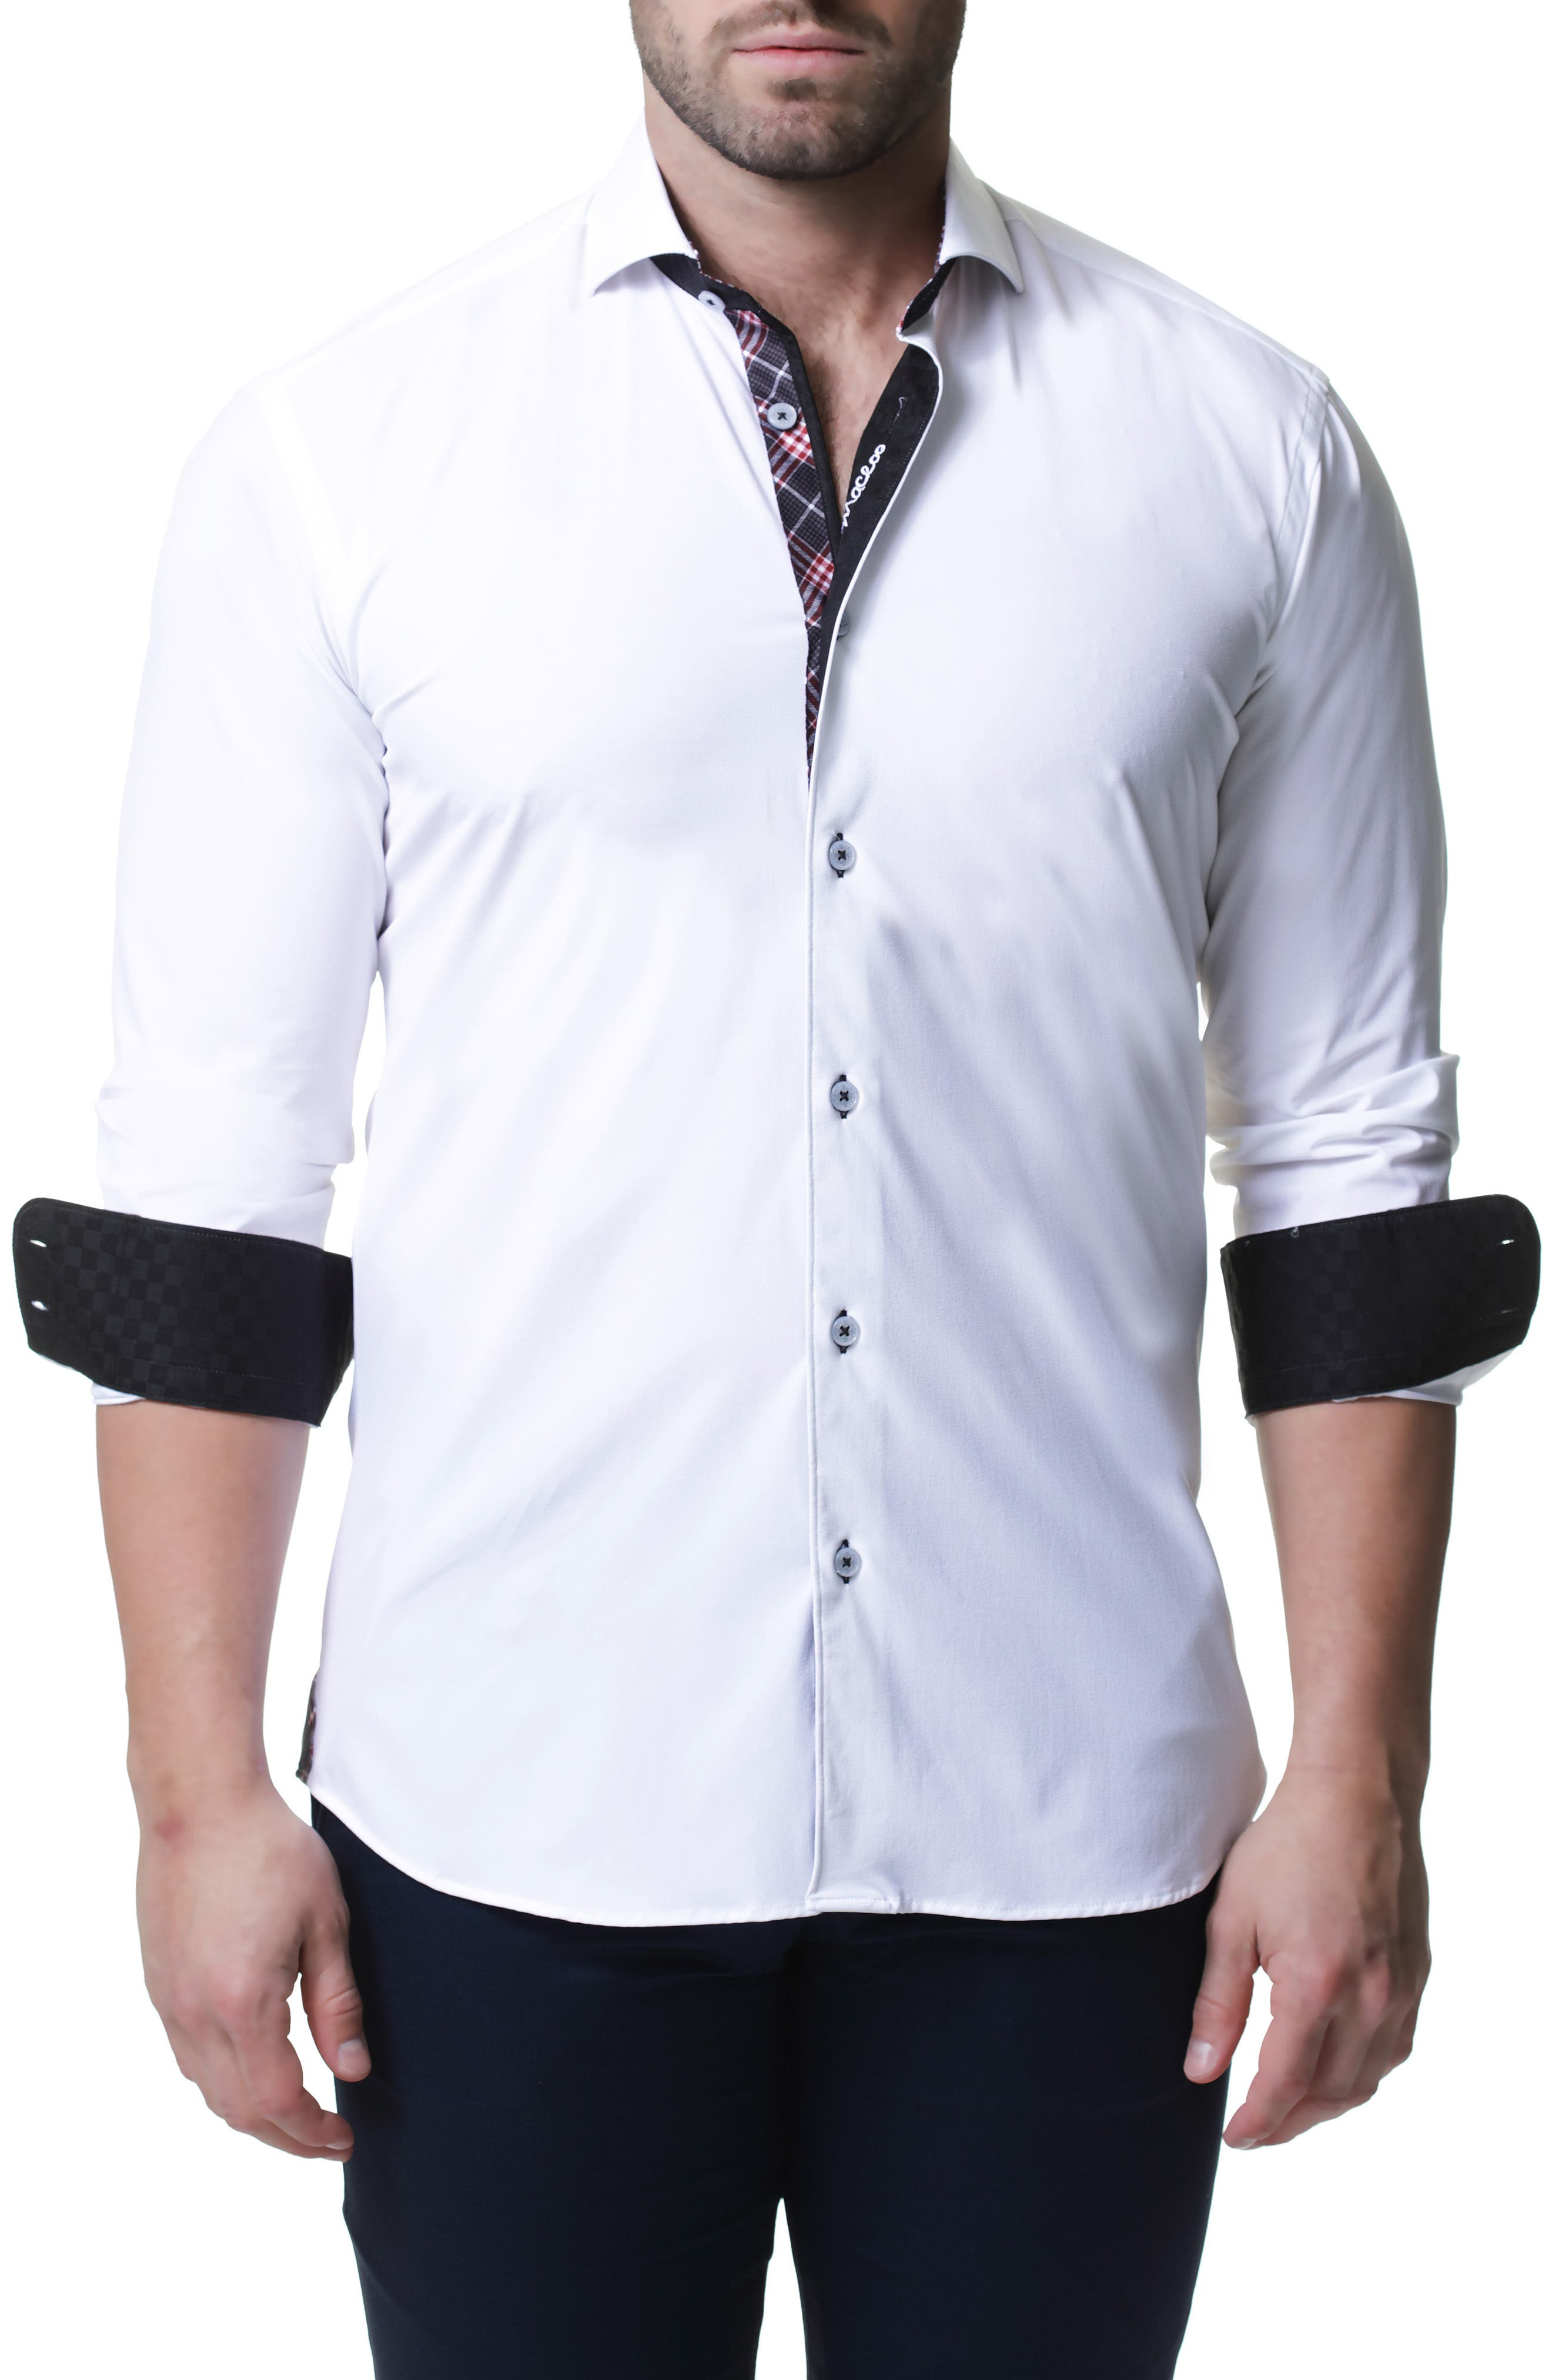 Wall Street 4-Way Stretch White Check Performance Sport Shirt,                             Alternate thumbnail 3, color,                             WHITE